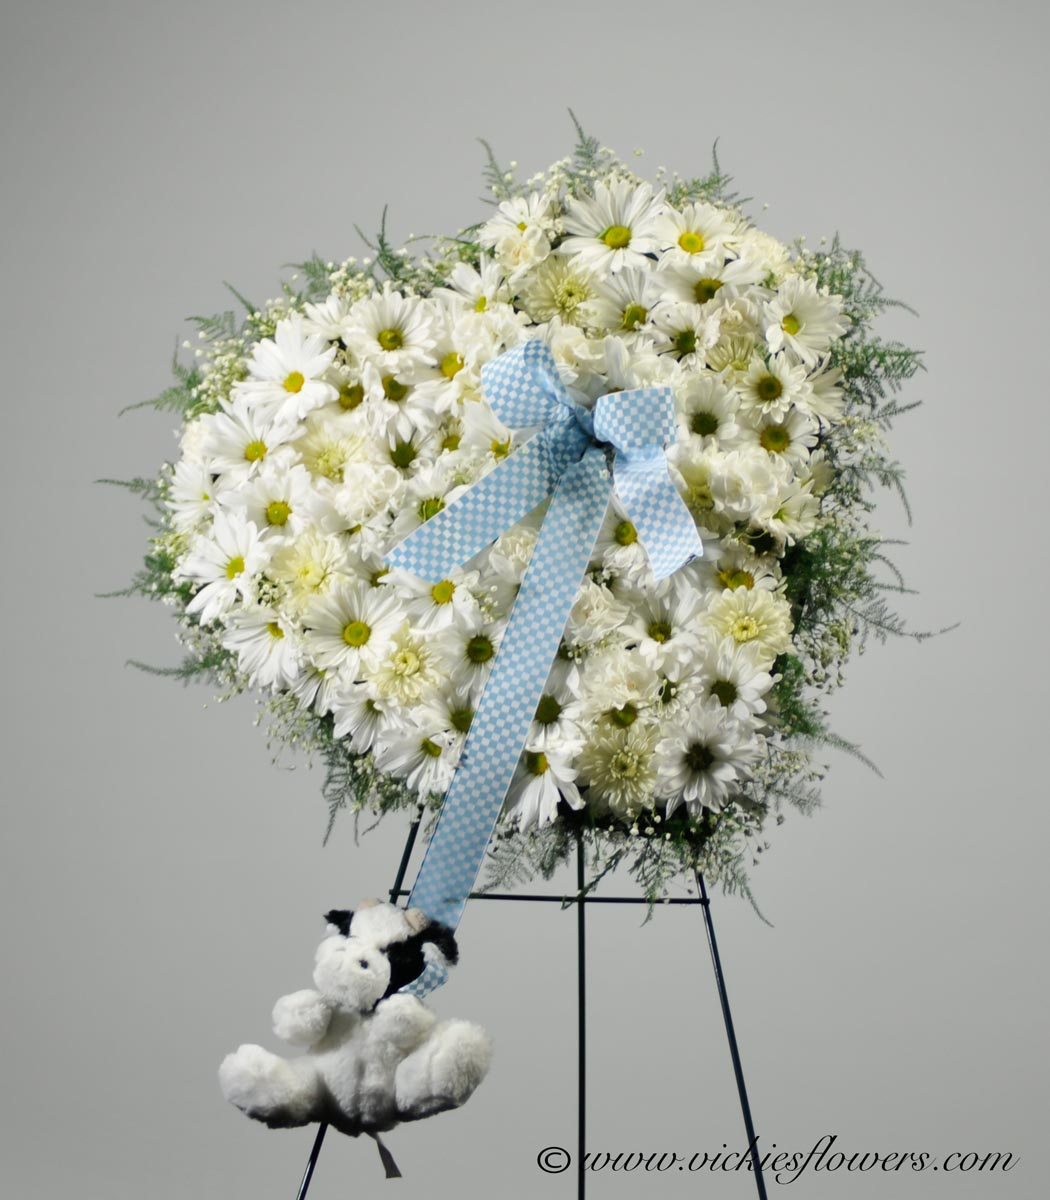 Funeral crosses standing sprays vickies flowers brighton co standing funeral spray 003 185 plus tax and delivery elegant white heart made with daisies and white mums blue ribbon attaches a stuffed animal izmirmasajfo